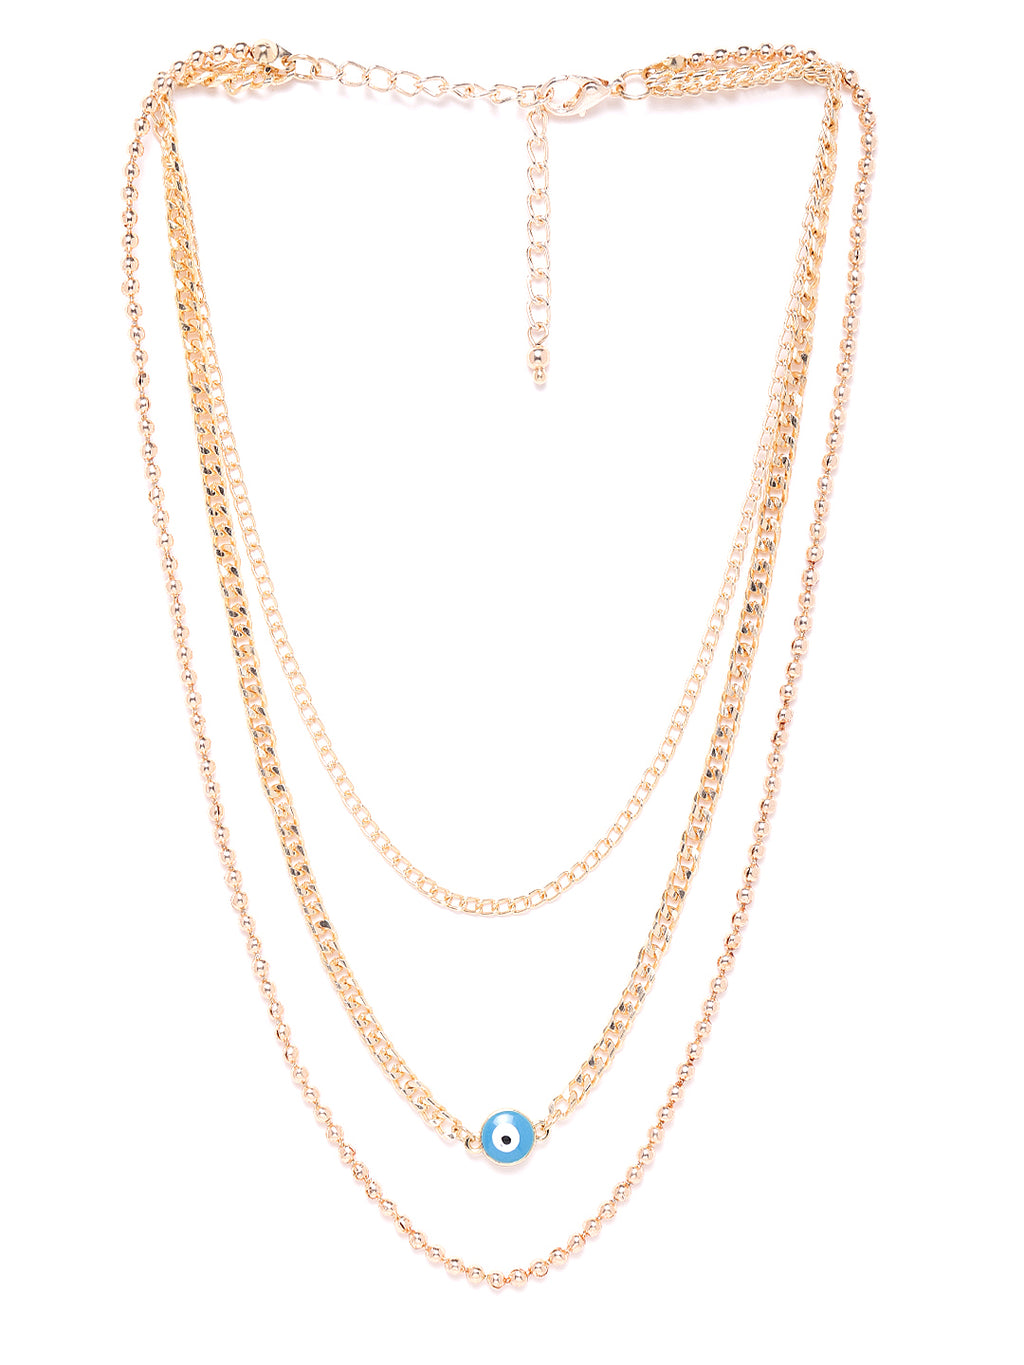 Blueberry gold Plated Evil Eye detailing chain layered necklace